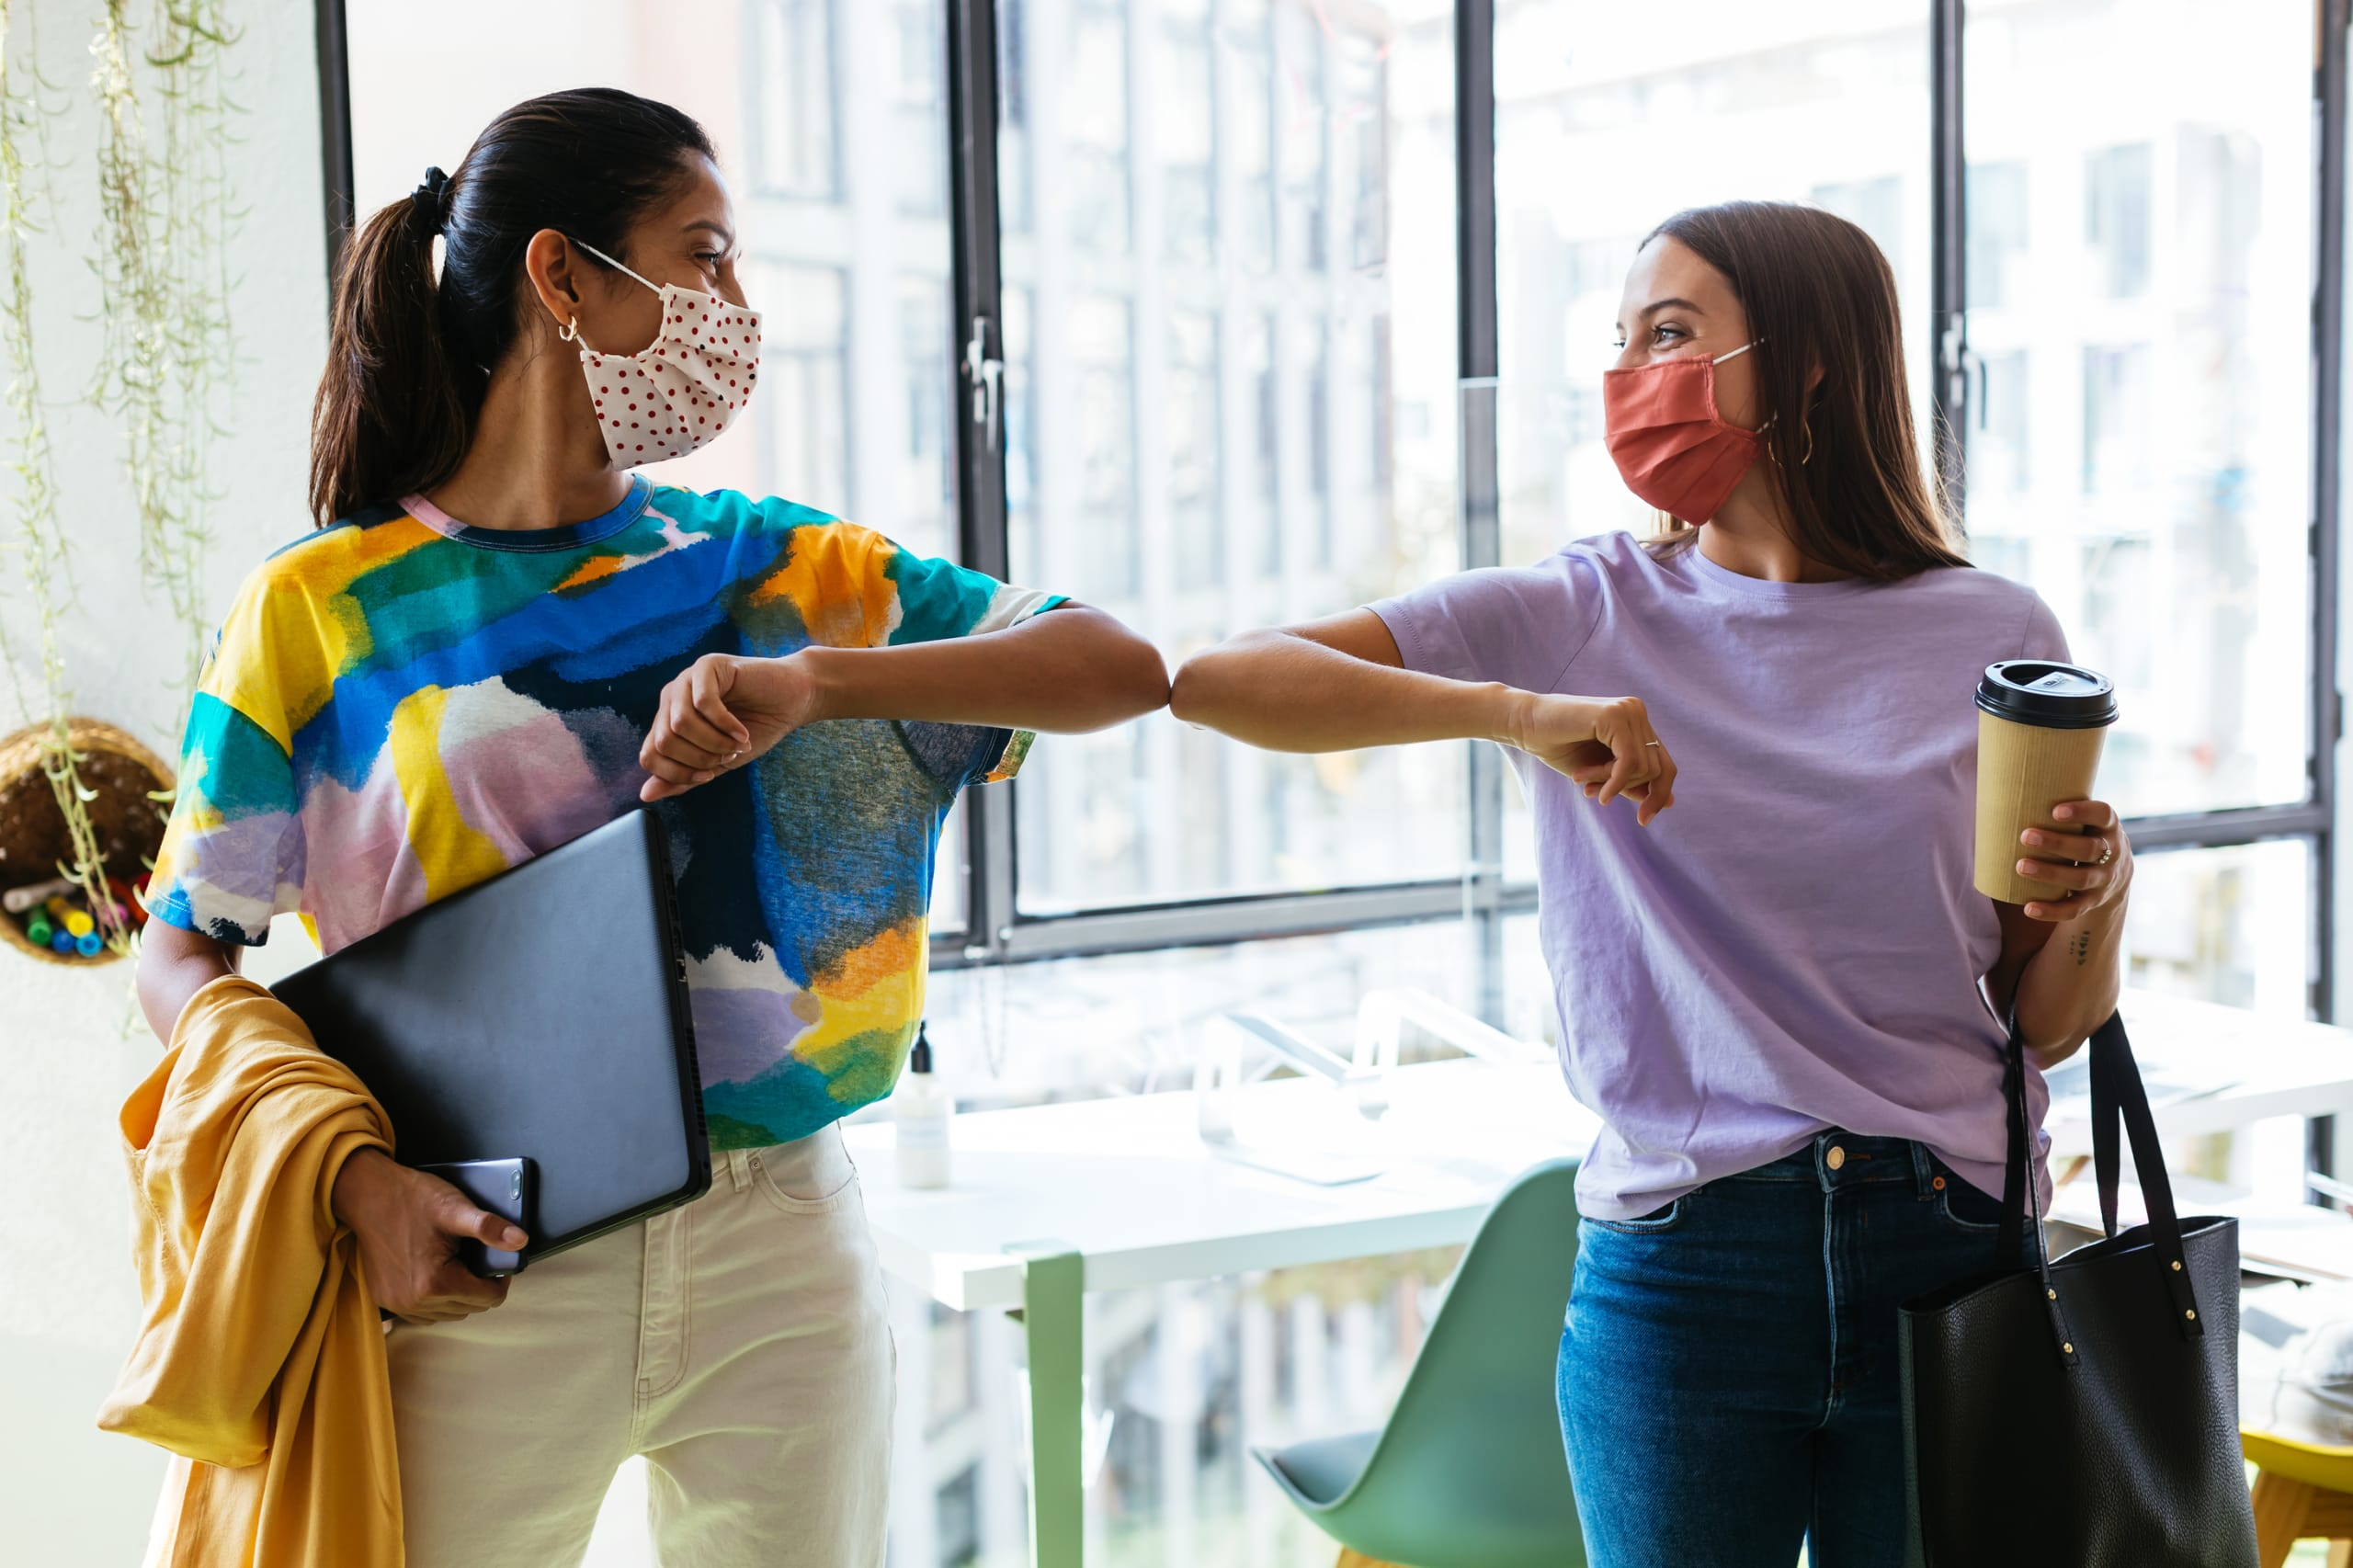 Female students greets each other during pandemic